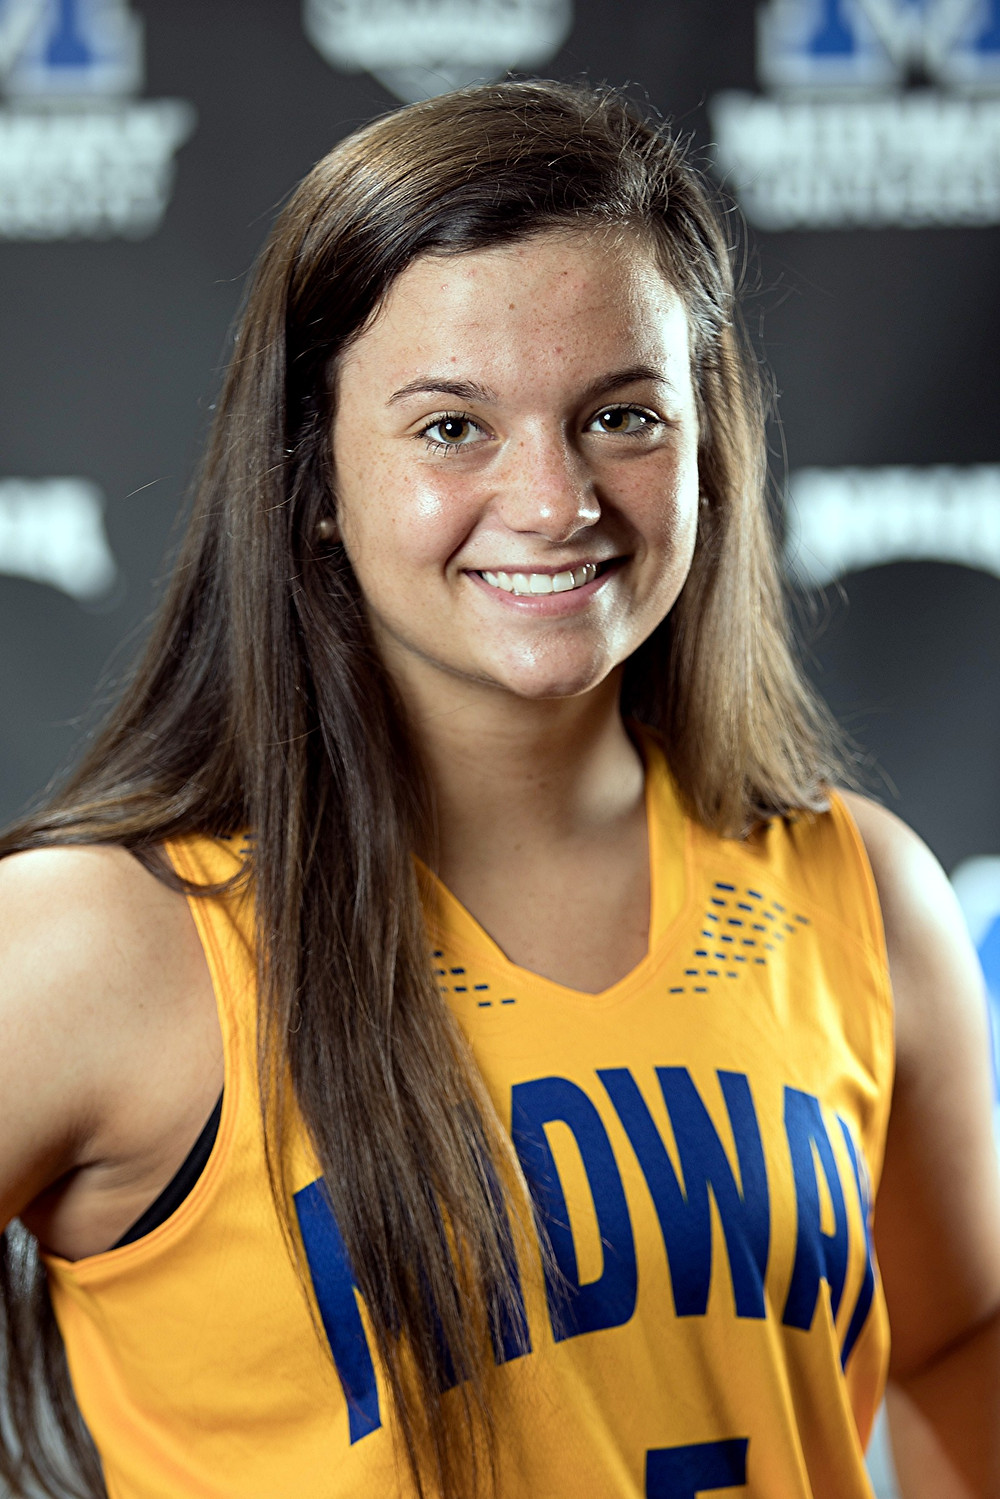 HALEIGH YAZELL, a freshman on the Midway University Women's basketball team, led the way with 14 points in the Eagles' 103-46 victory over Central Christian College. (Photo by Midway Univ. Athletics)